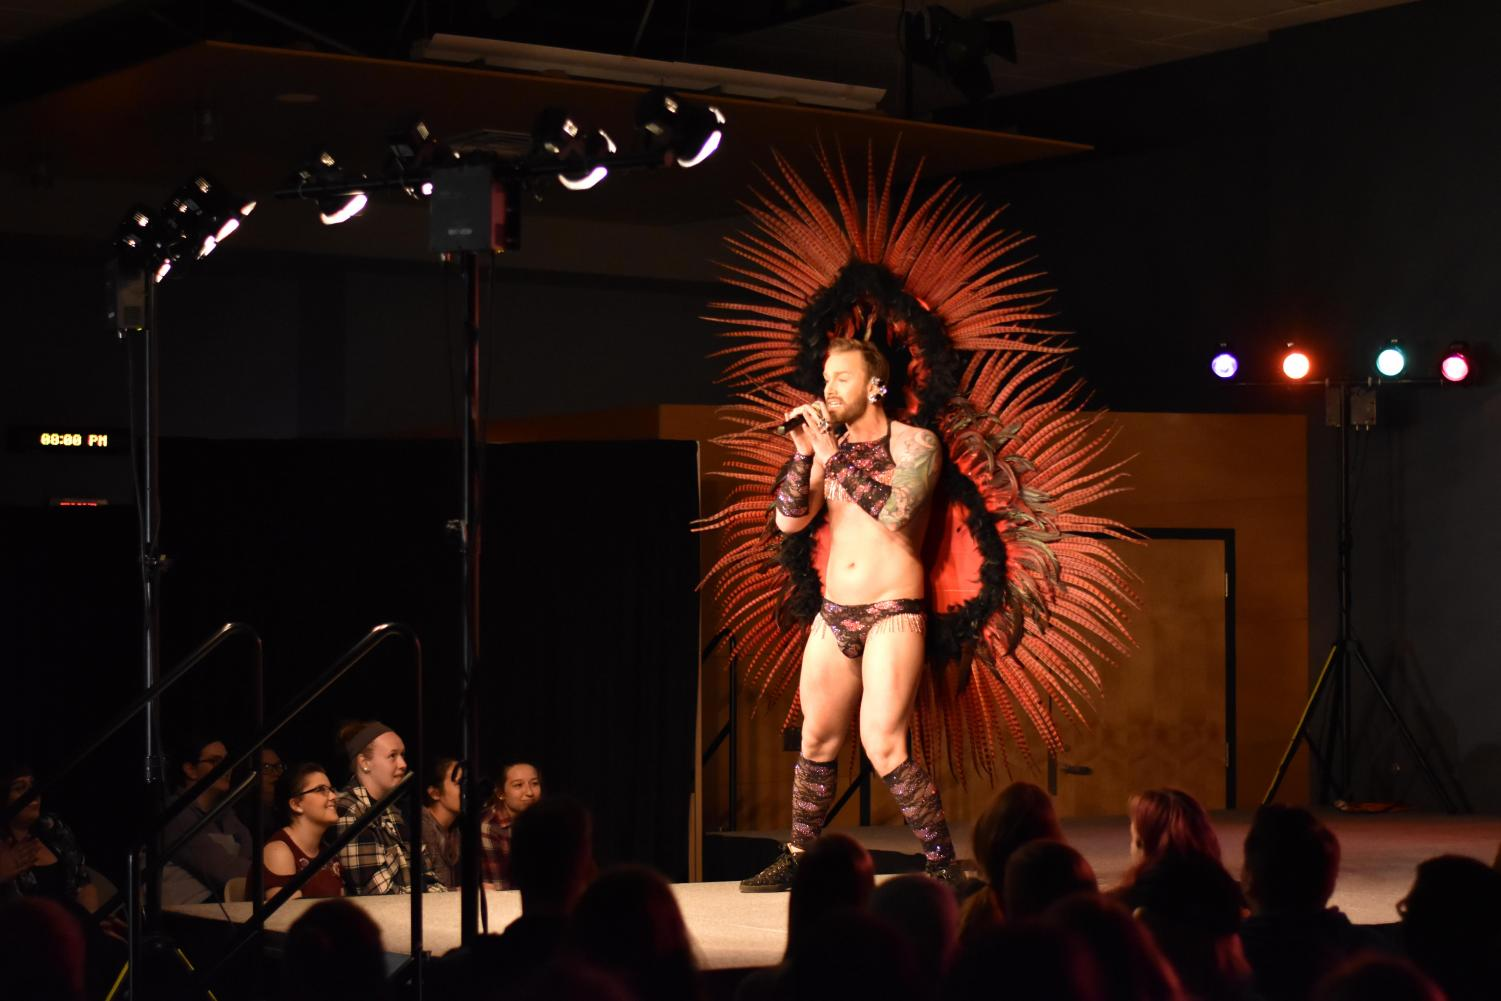 Taylor Ashton entertains the crowd during a performance for the drag show.